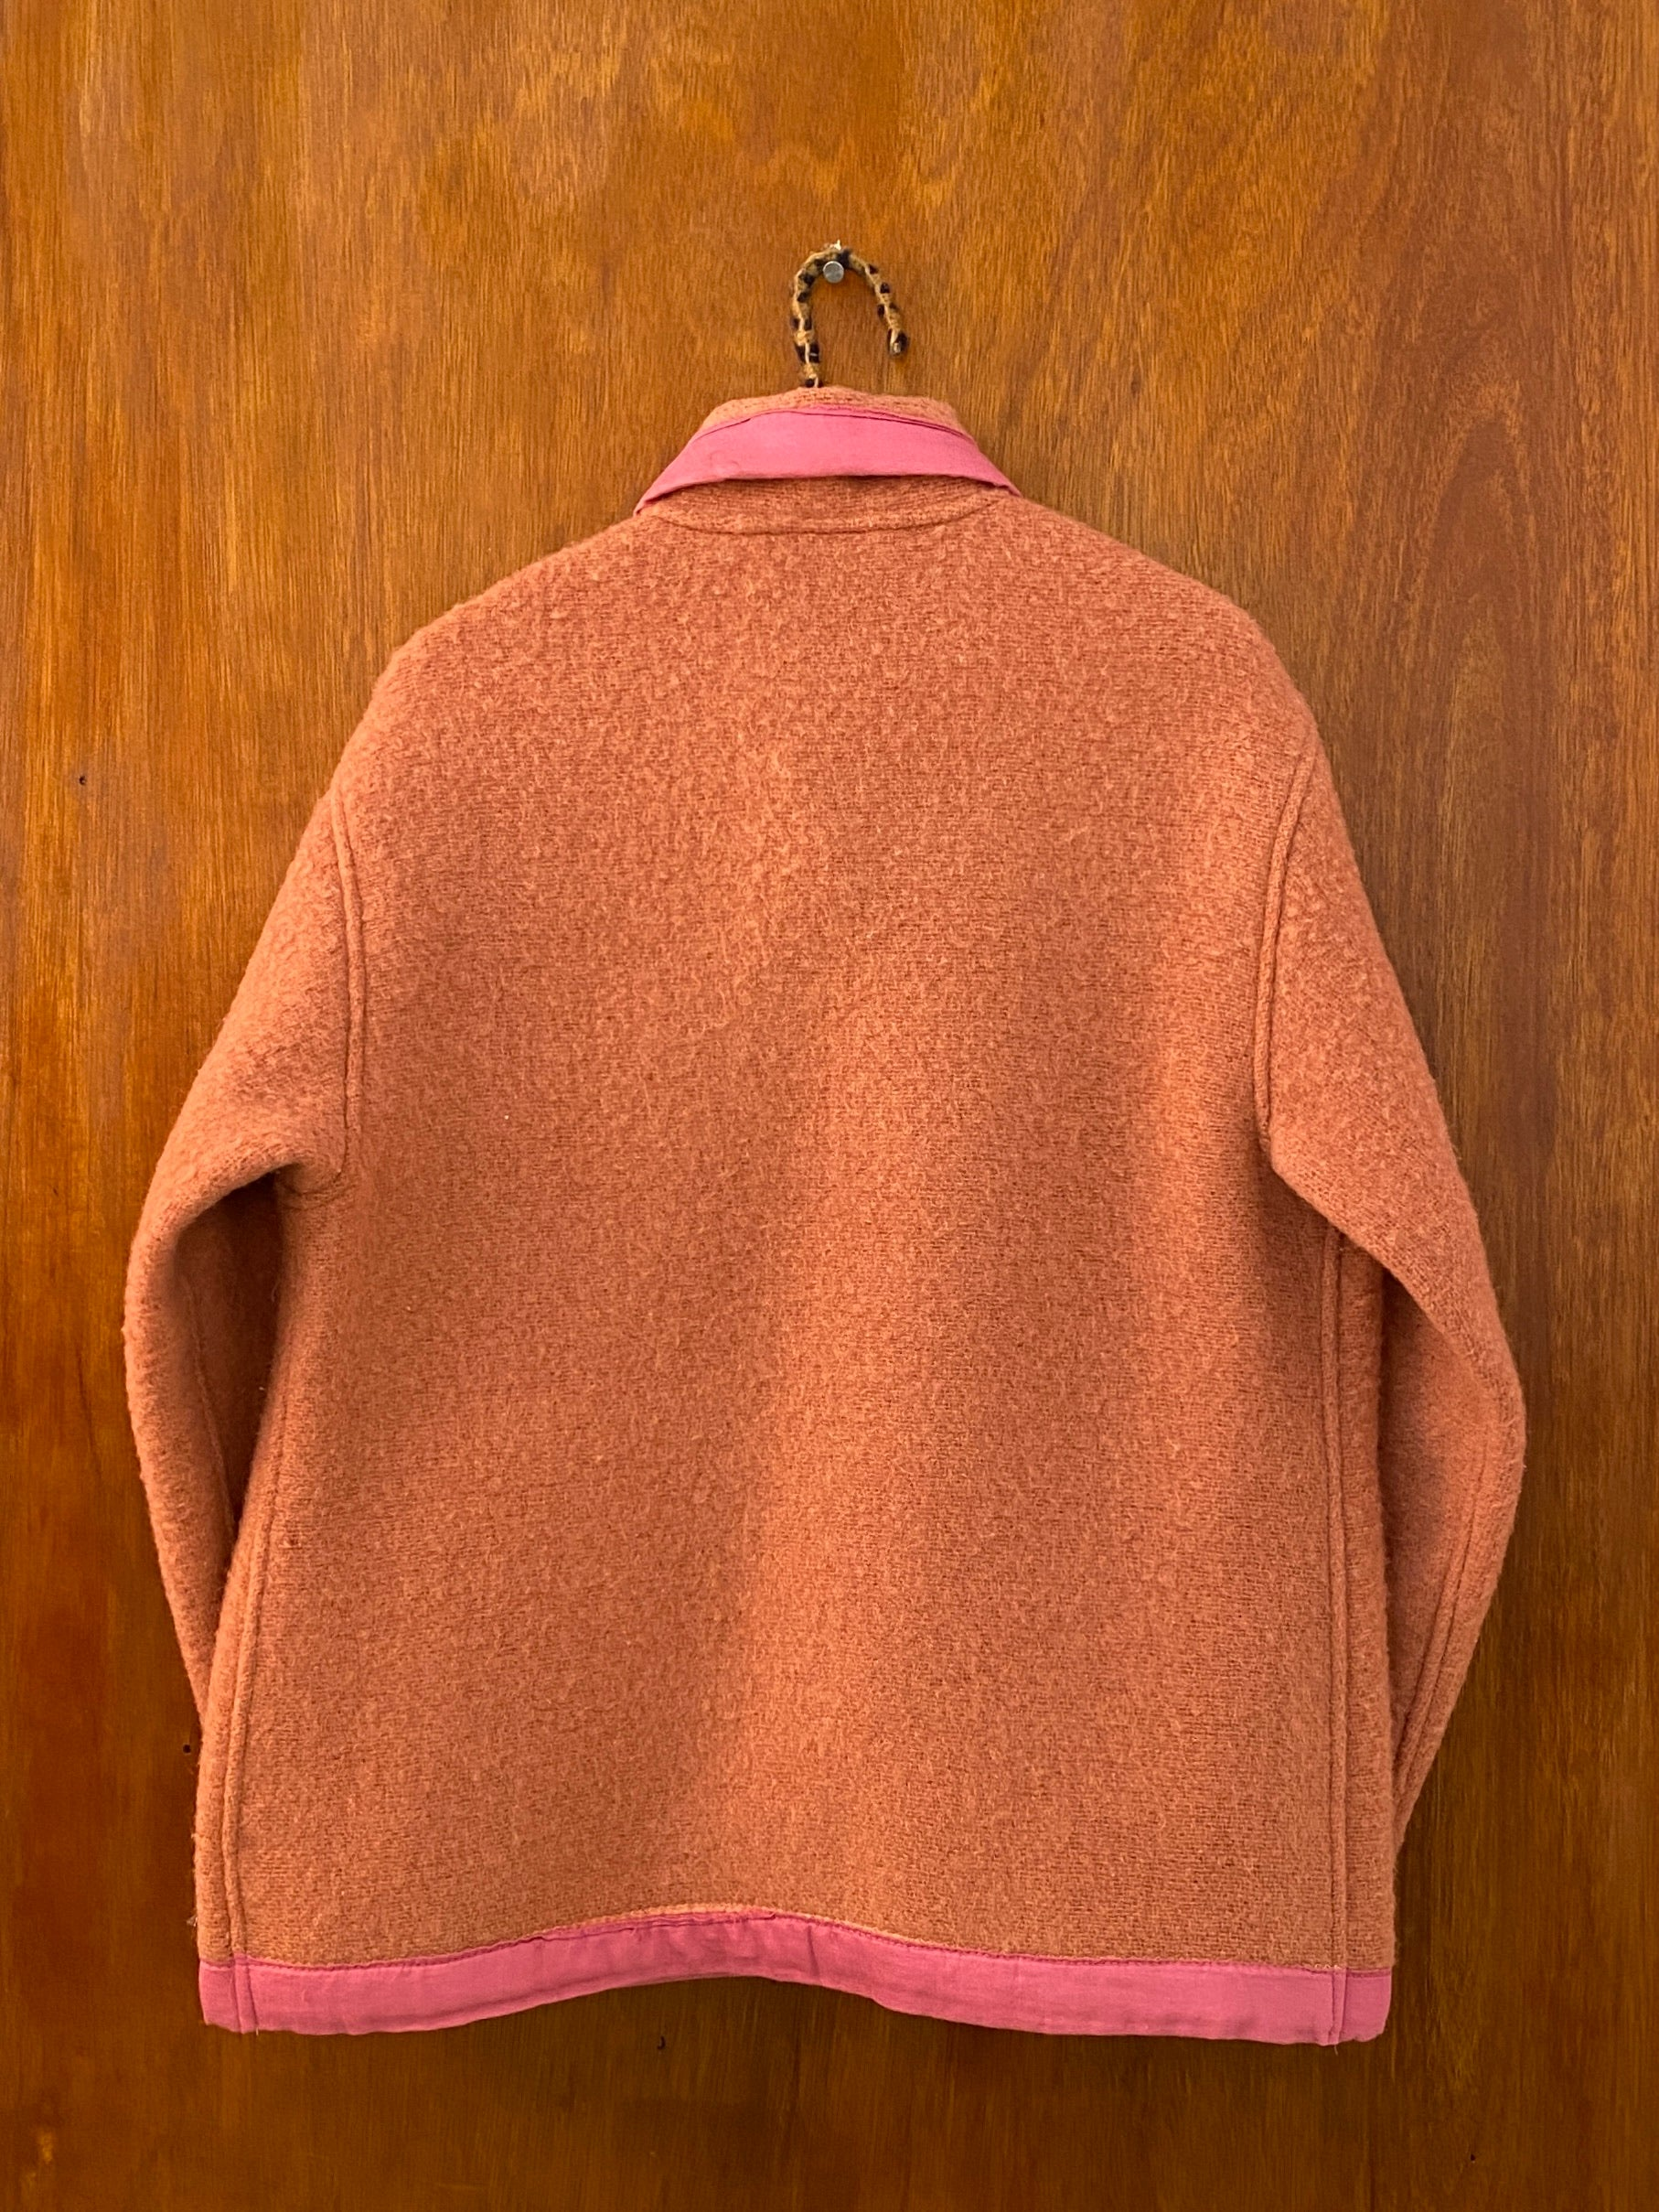 Junior High Blanket Jacket - M/L